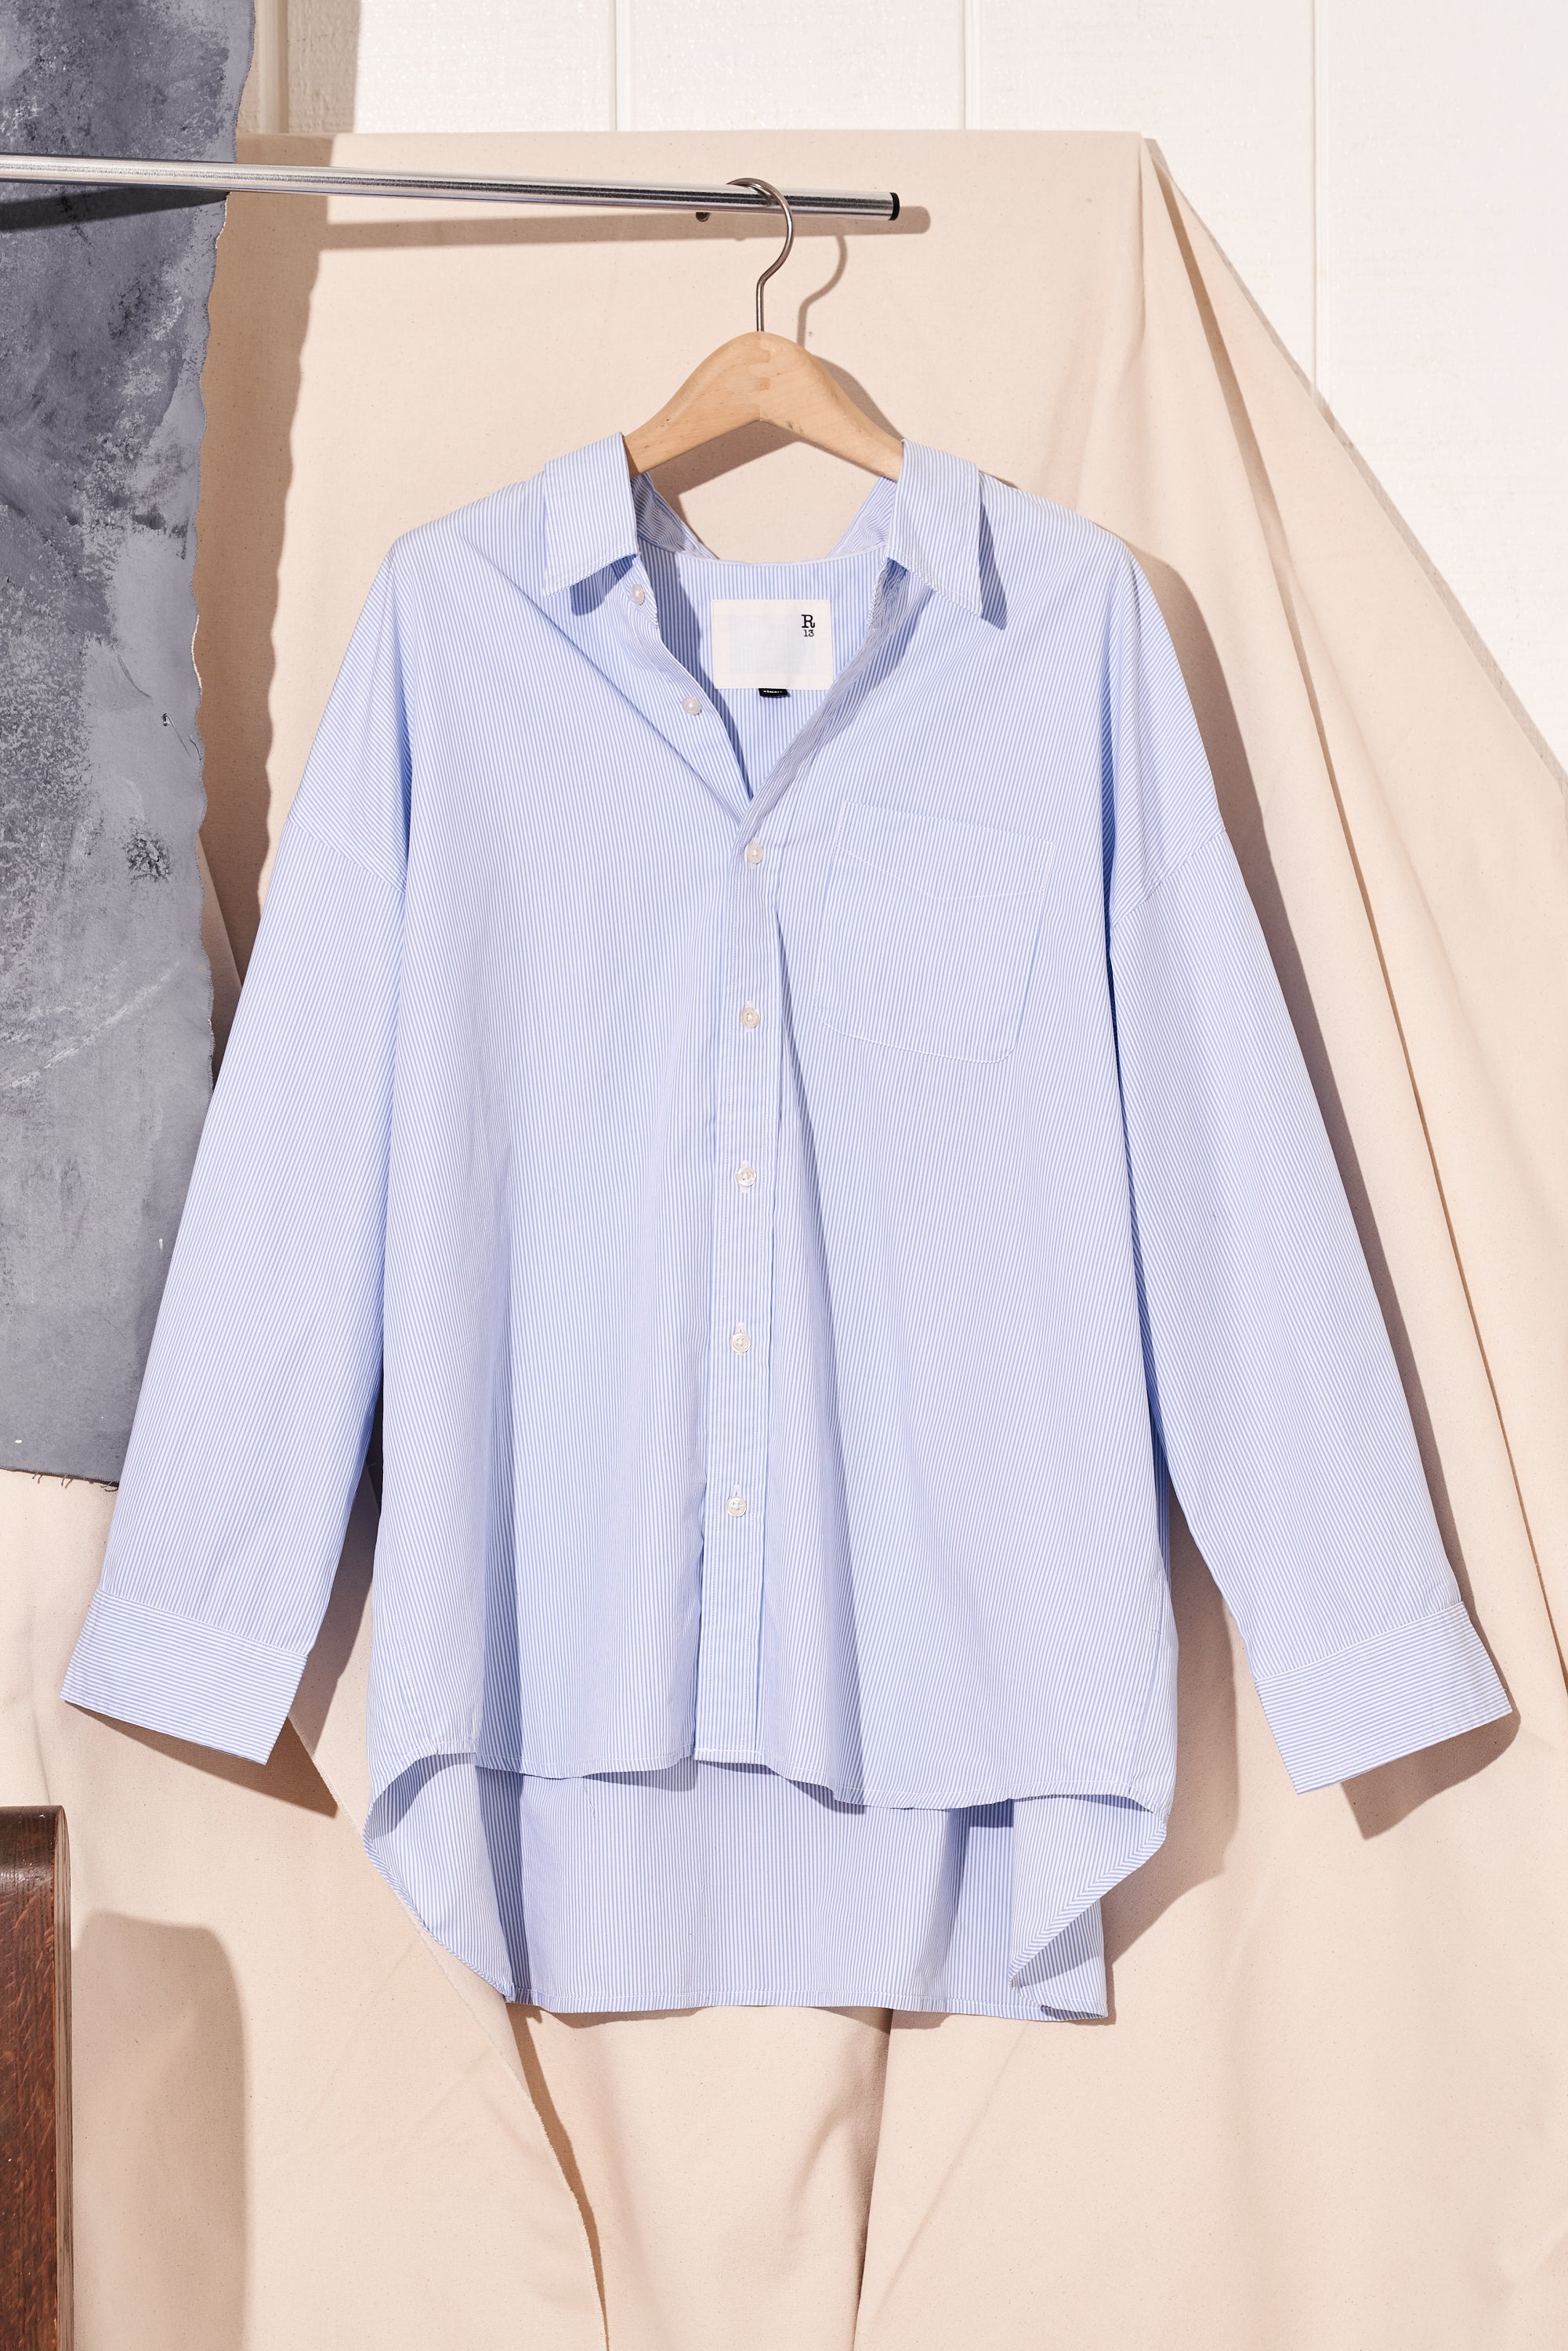 R13 - Oxford Shirt